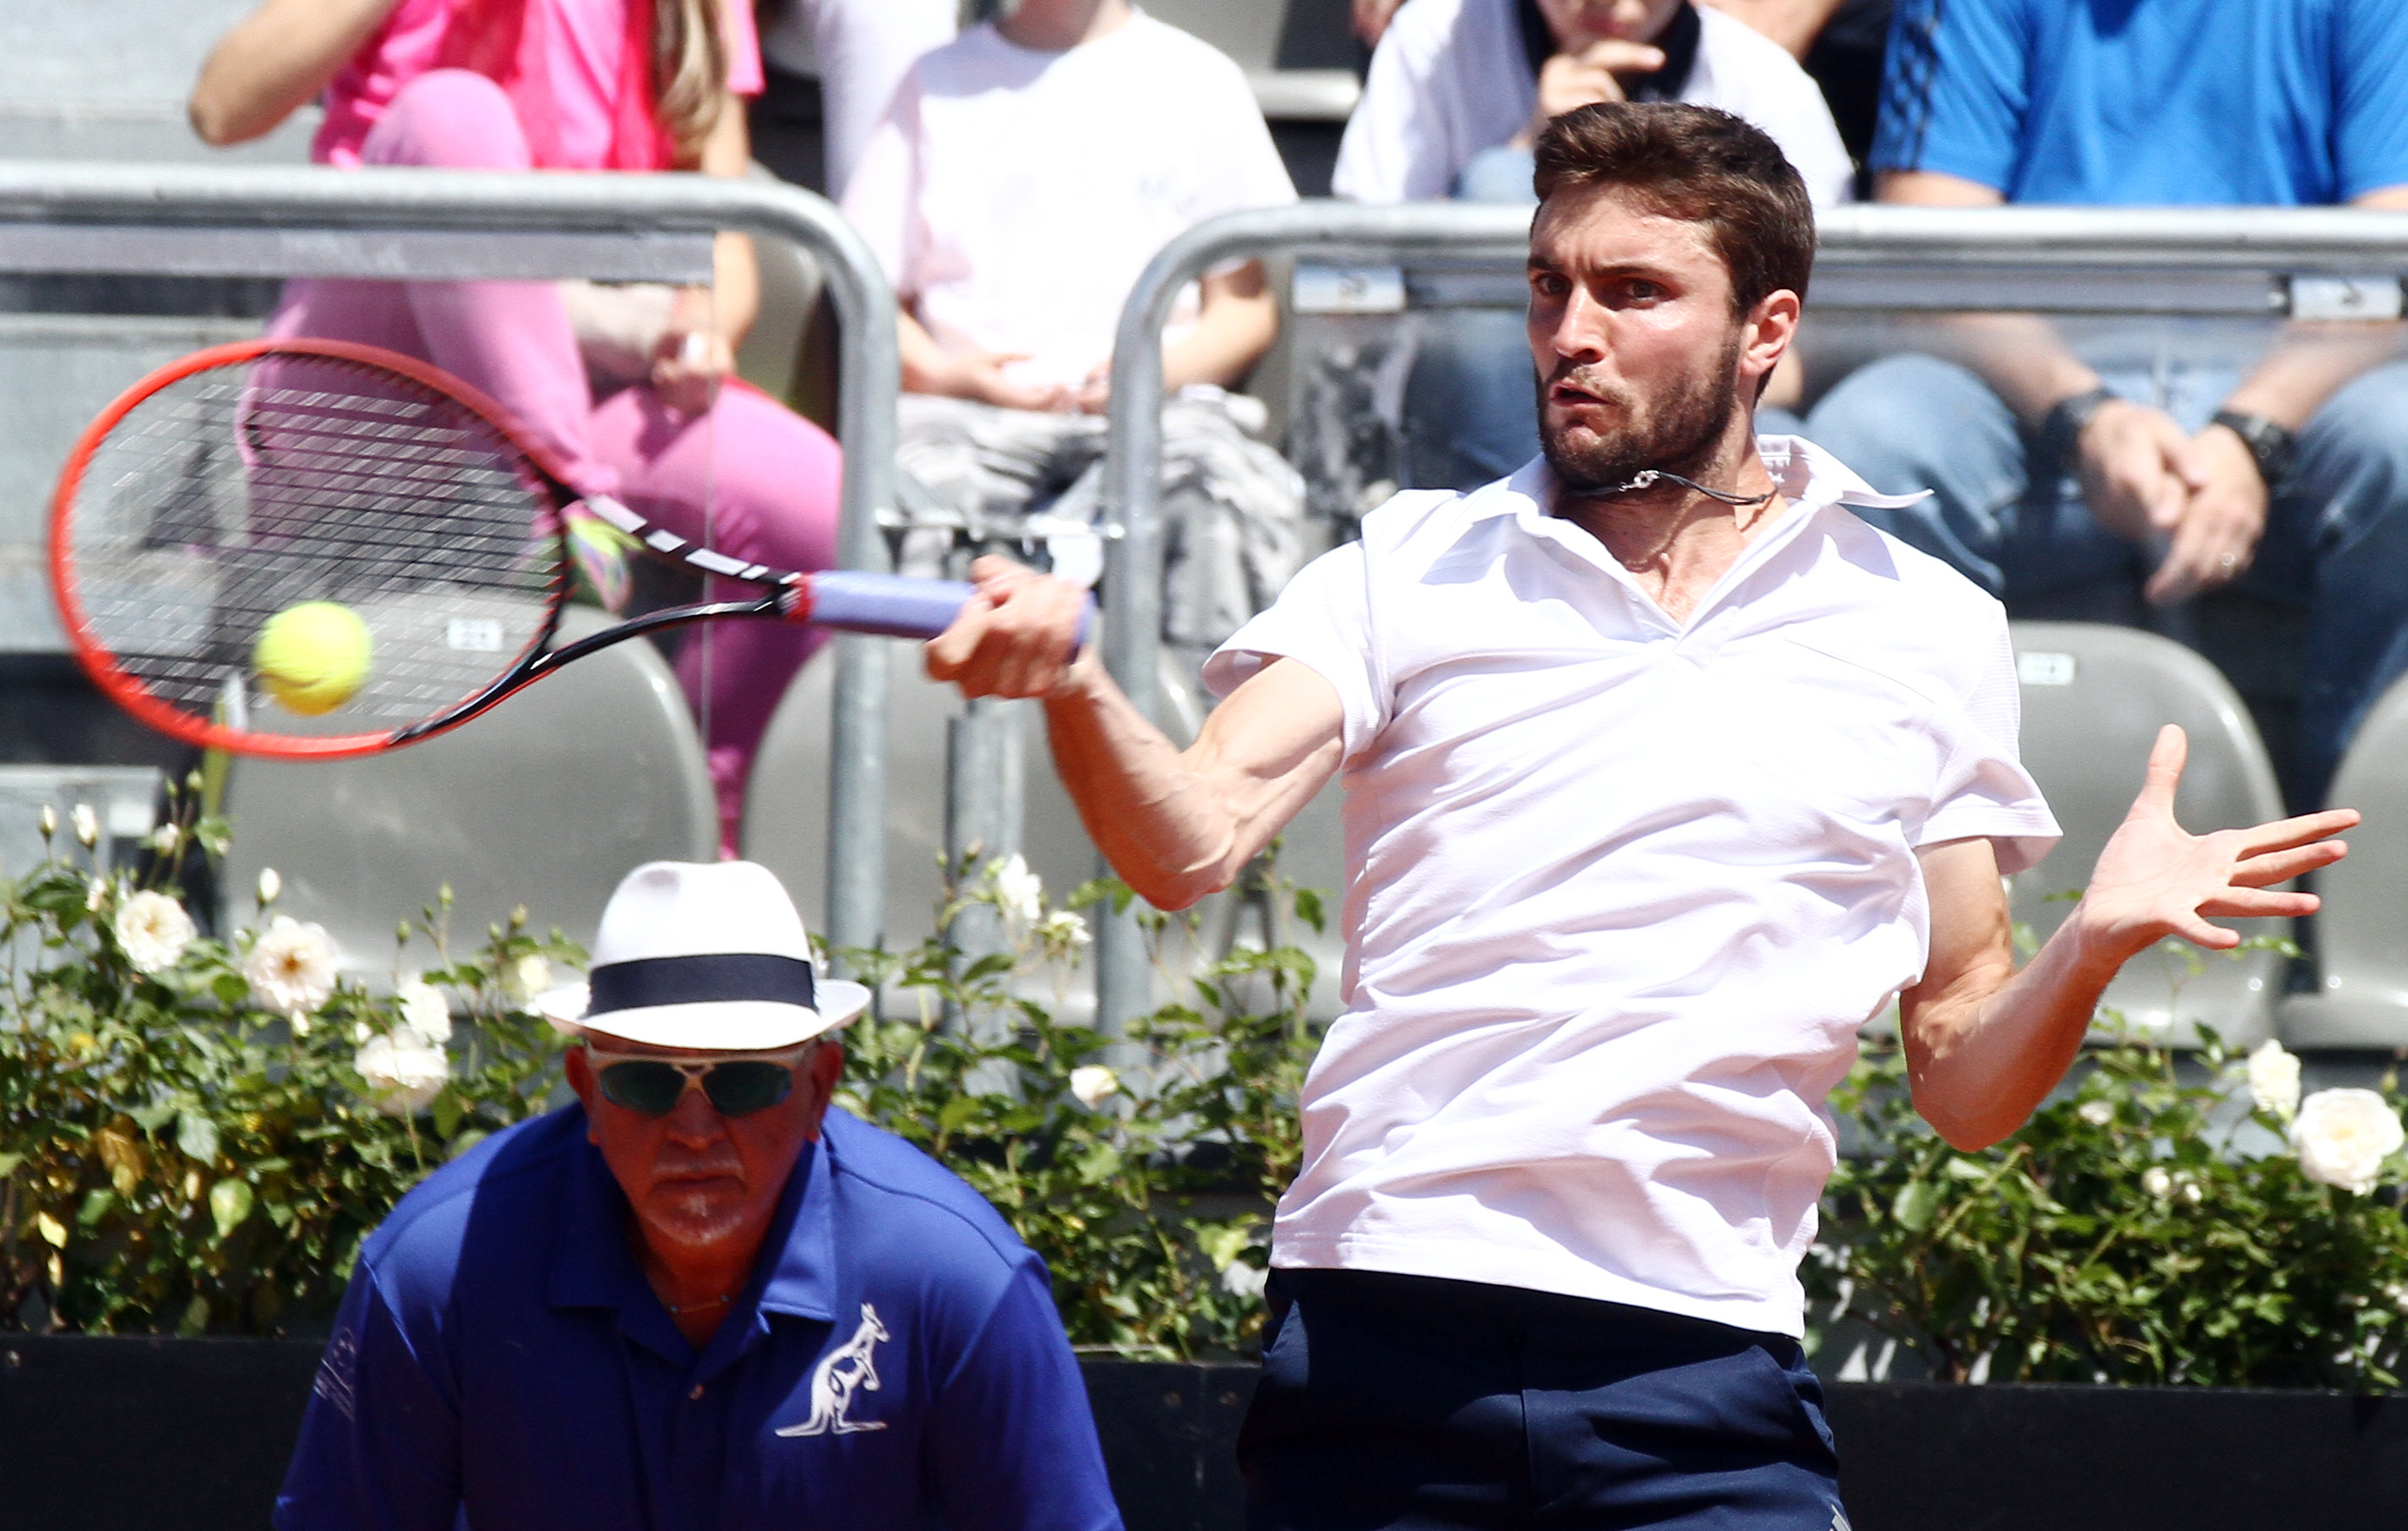 France's Gilles Simon returns the ball to Jack Sock from US during their match at the Italian Open tennis tournament, in Rome, Monday, May 11, 2015. (AP Photo/Felice Calabro')